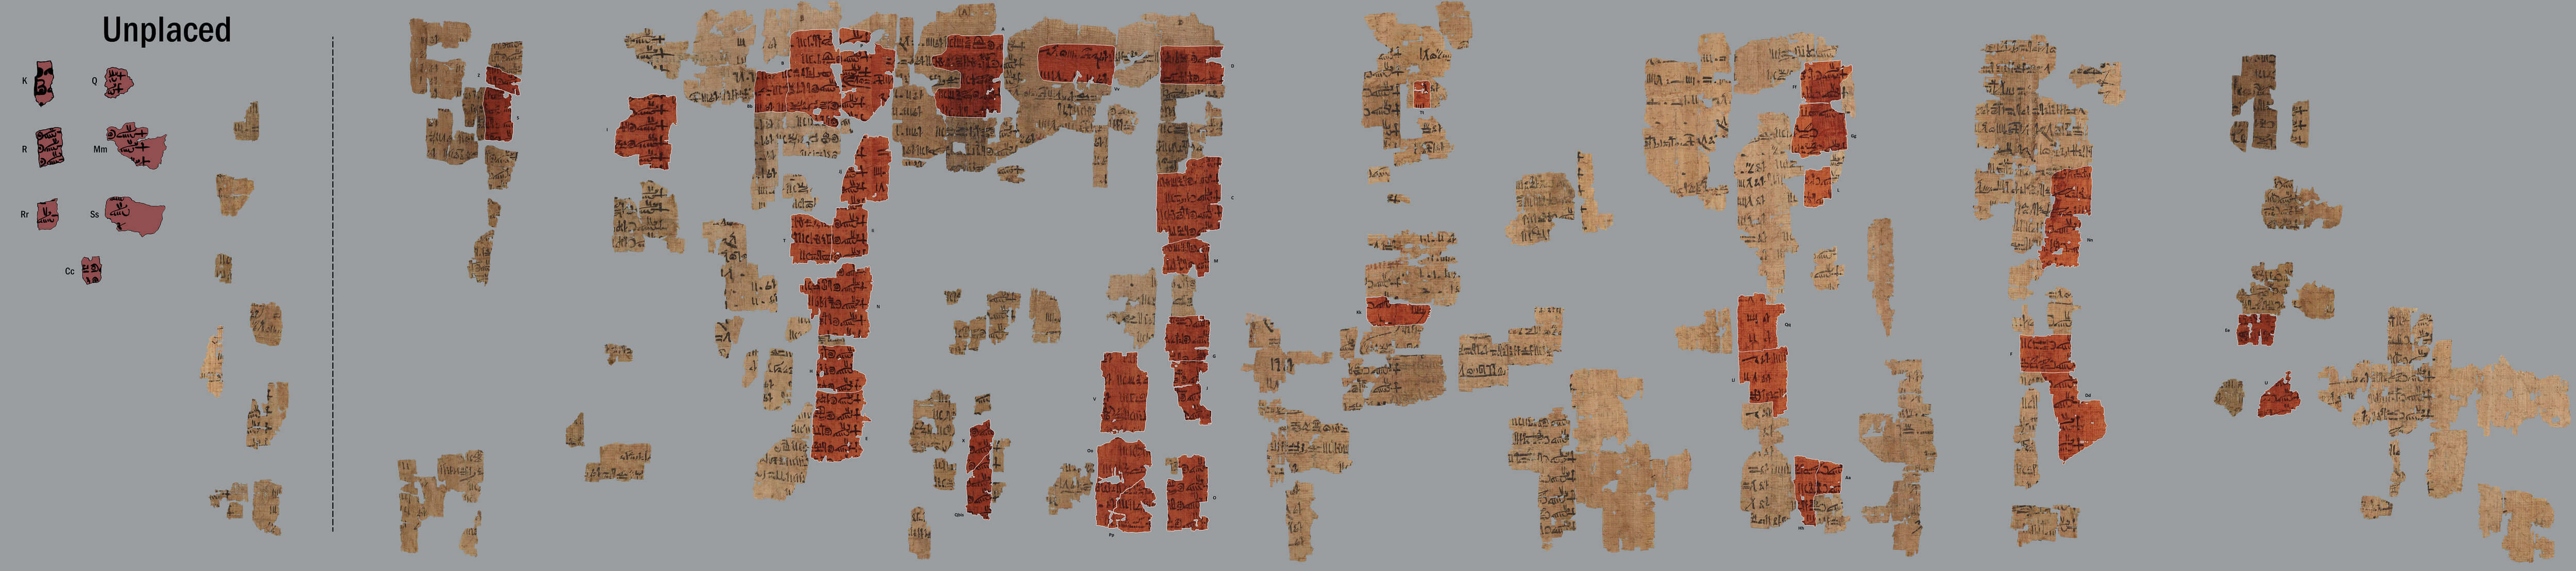 Fragments discovered by Champollion (in red)